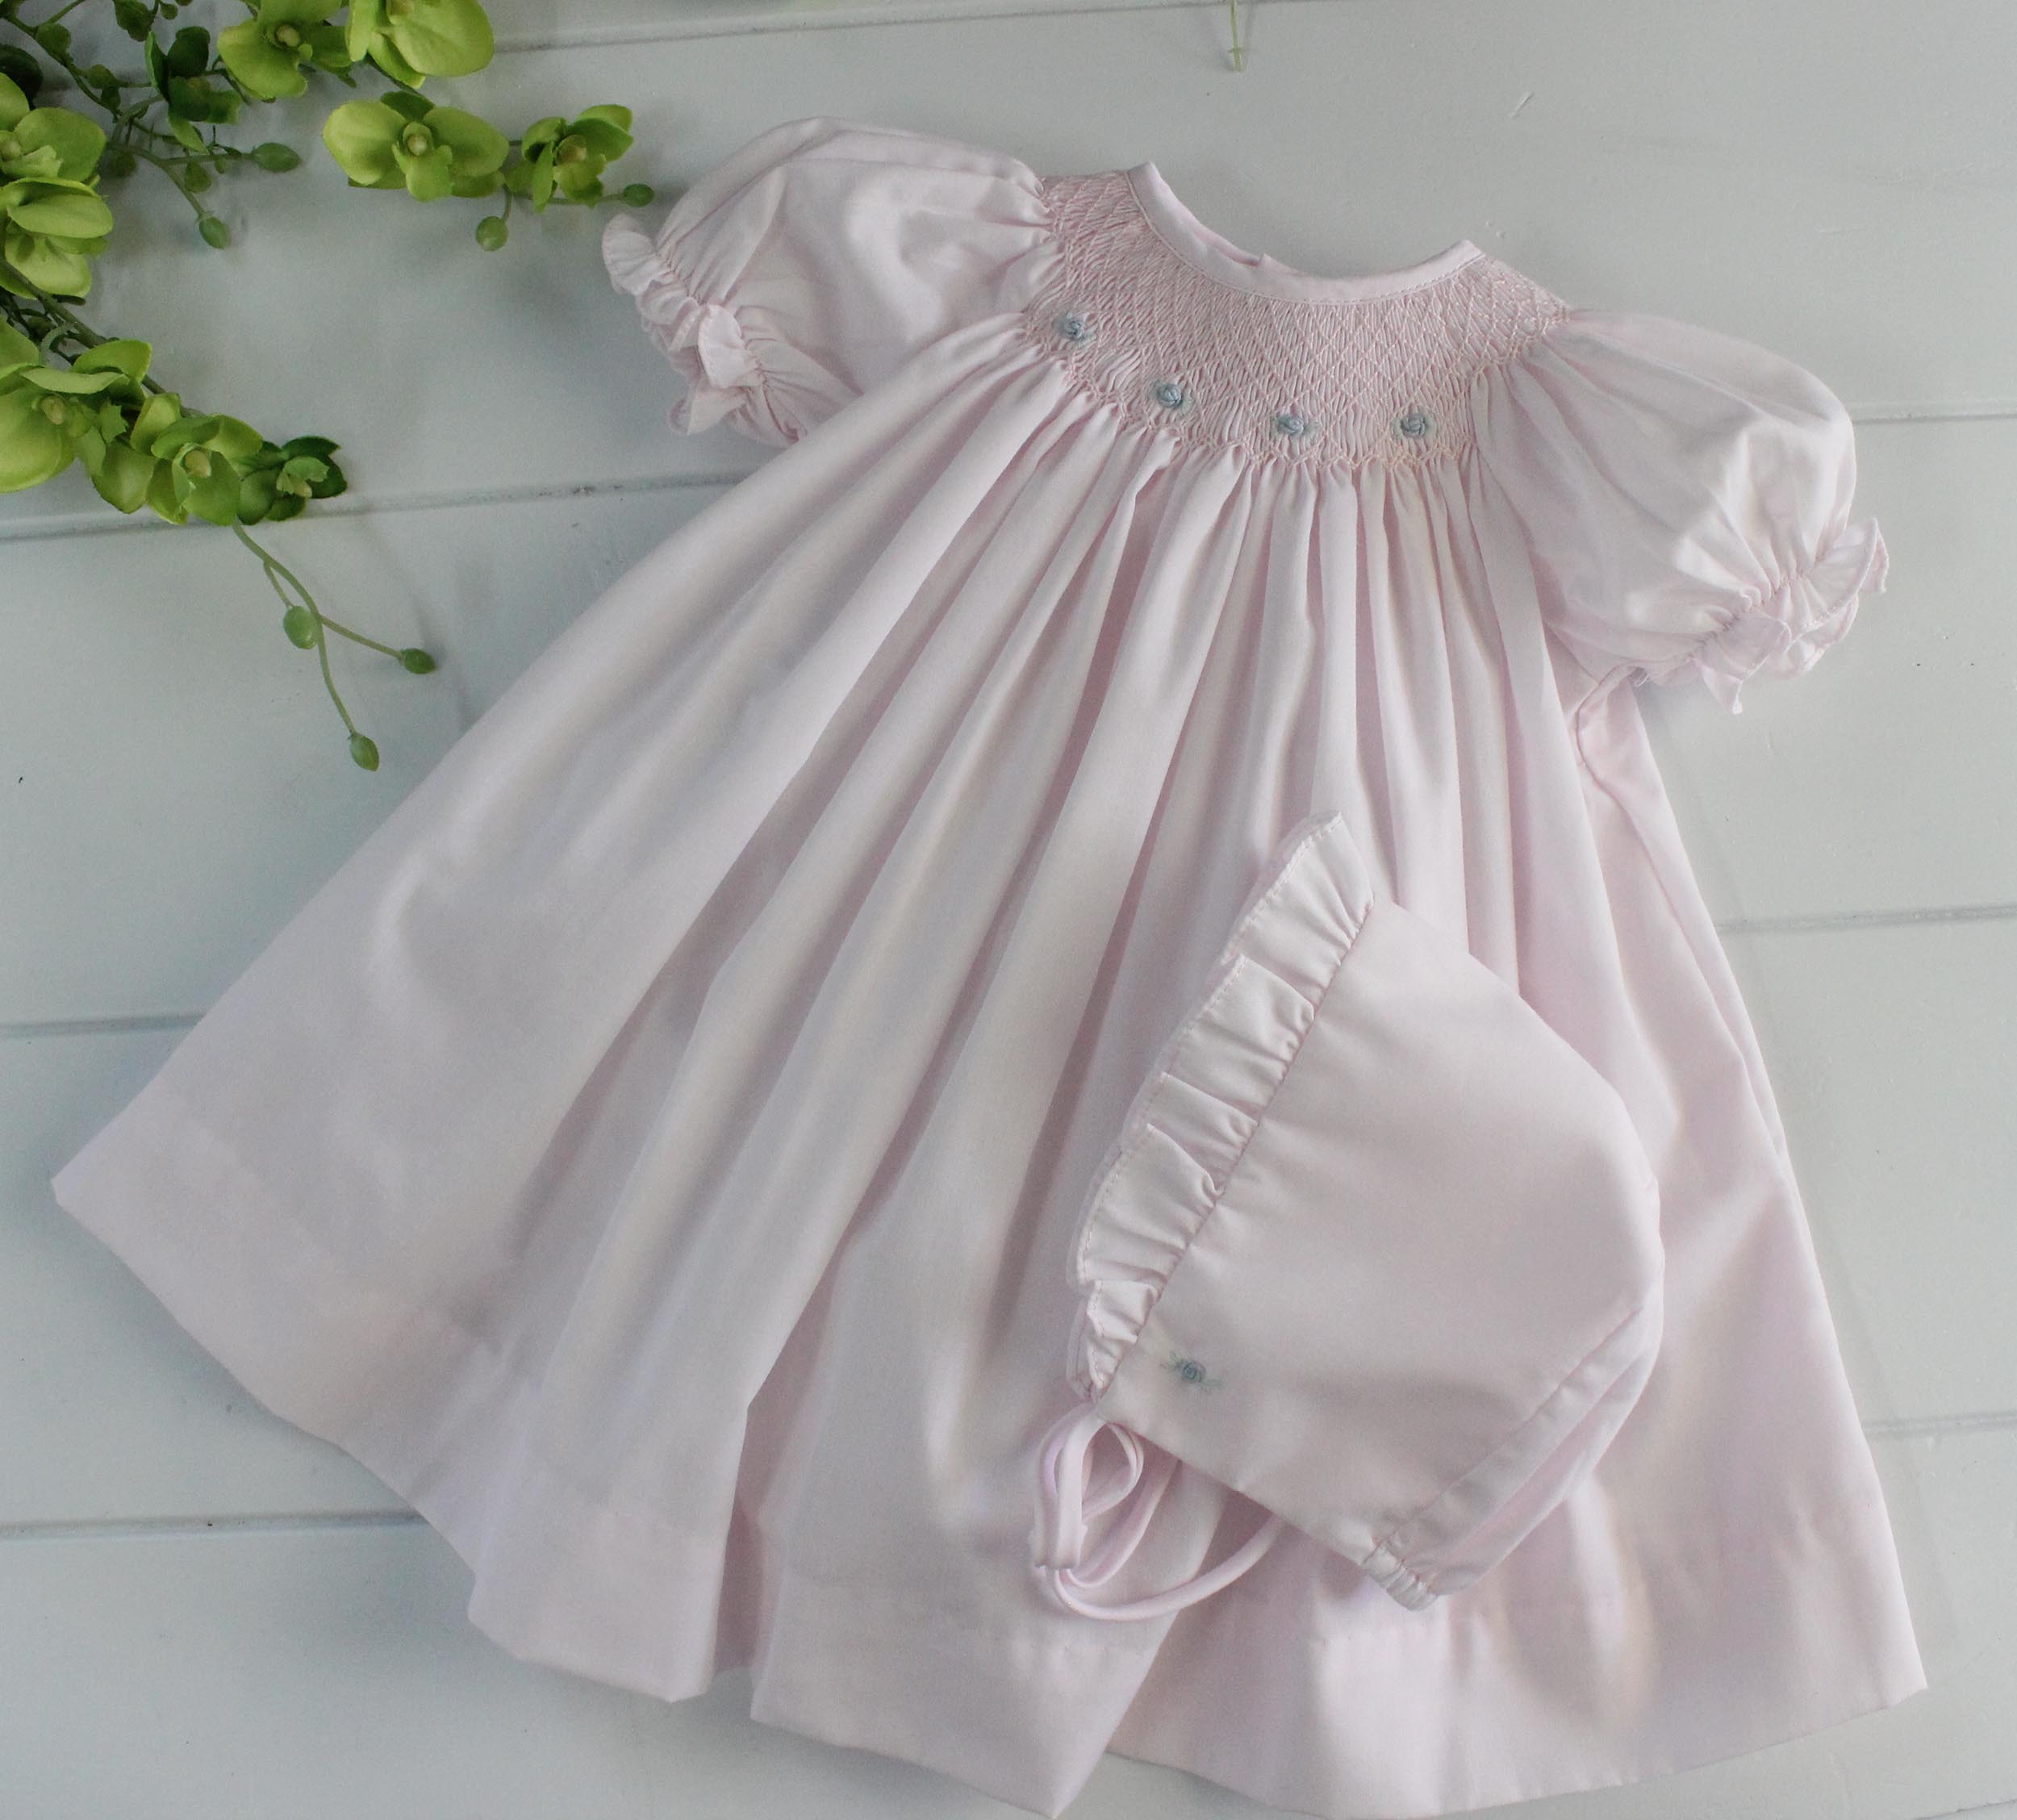 c38af5276 Infant Girls Day Gowns Make Beautiful Take Home Outfits - Hiccups ...